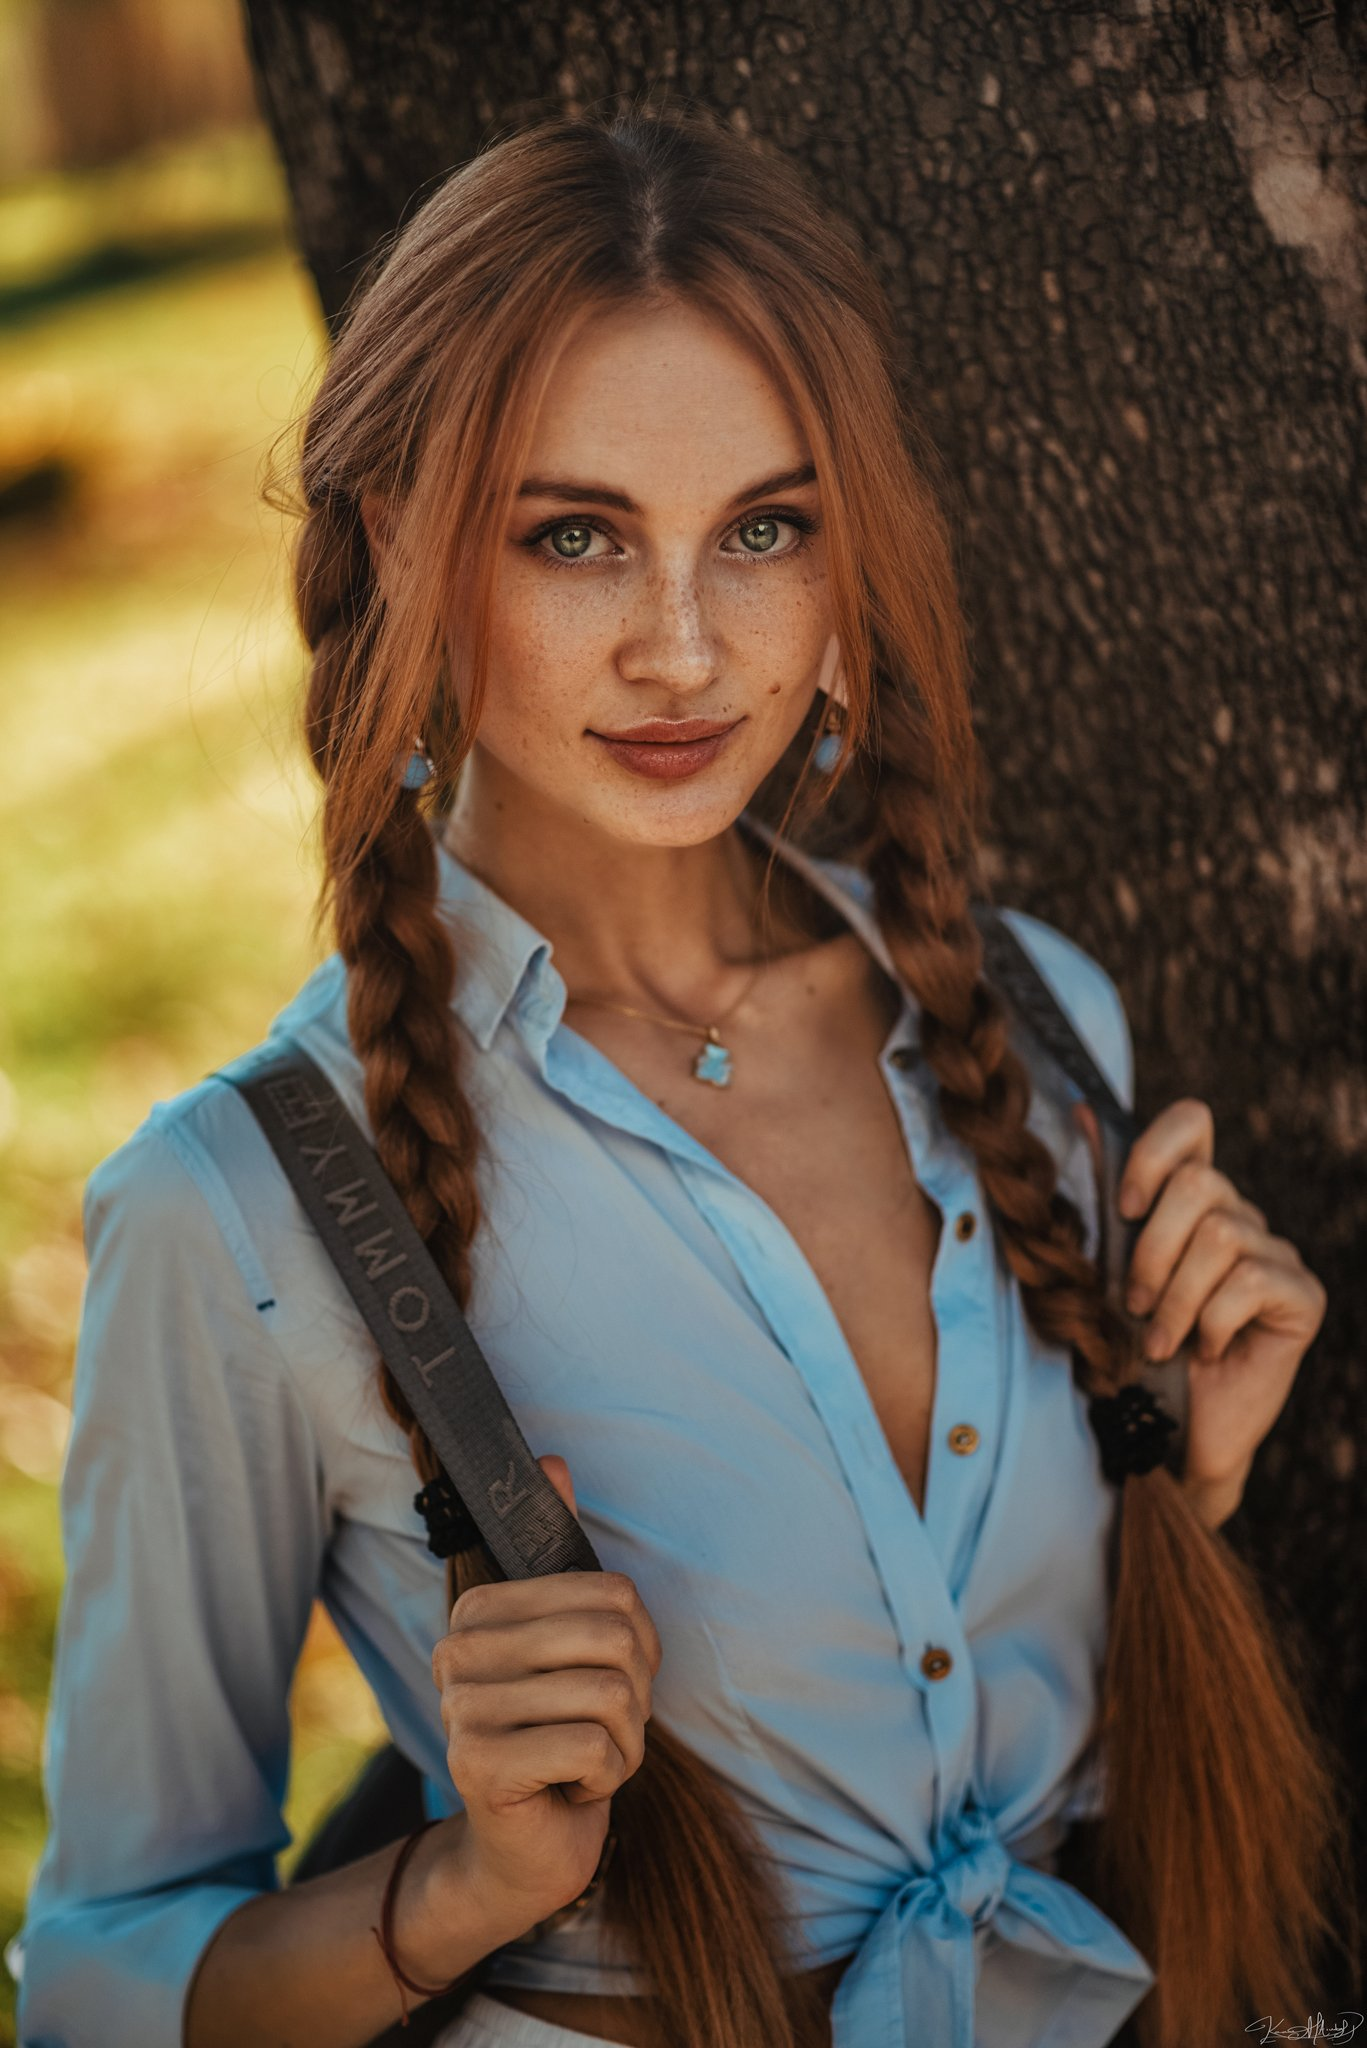 pretty, girl, beautiful, eyes, young, redhair, beauty, face, colorful, daylight, 85mm, istanbul, natural, light, fashion, portrait, art, nikon, Каан Алтындал